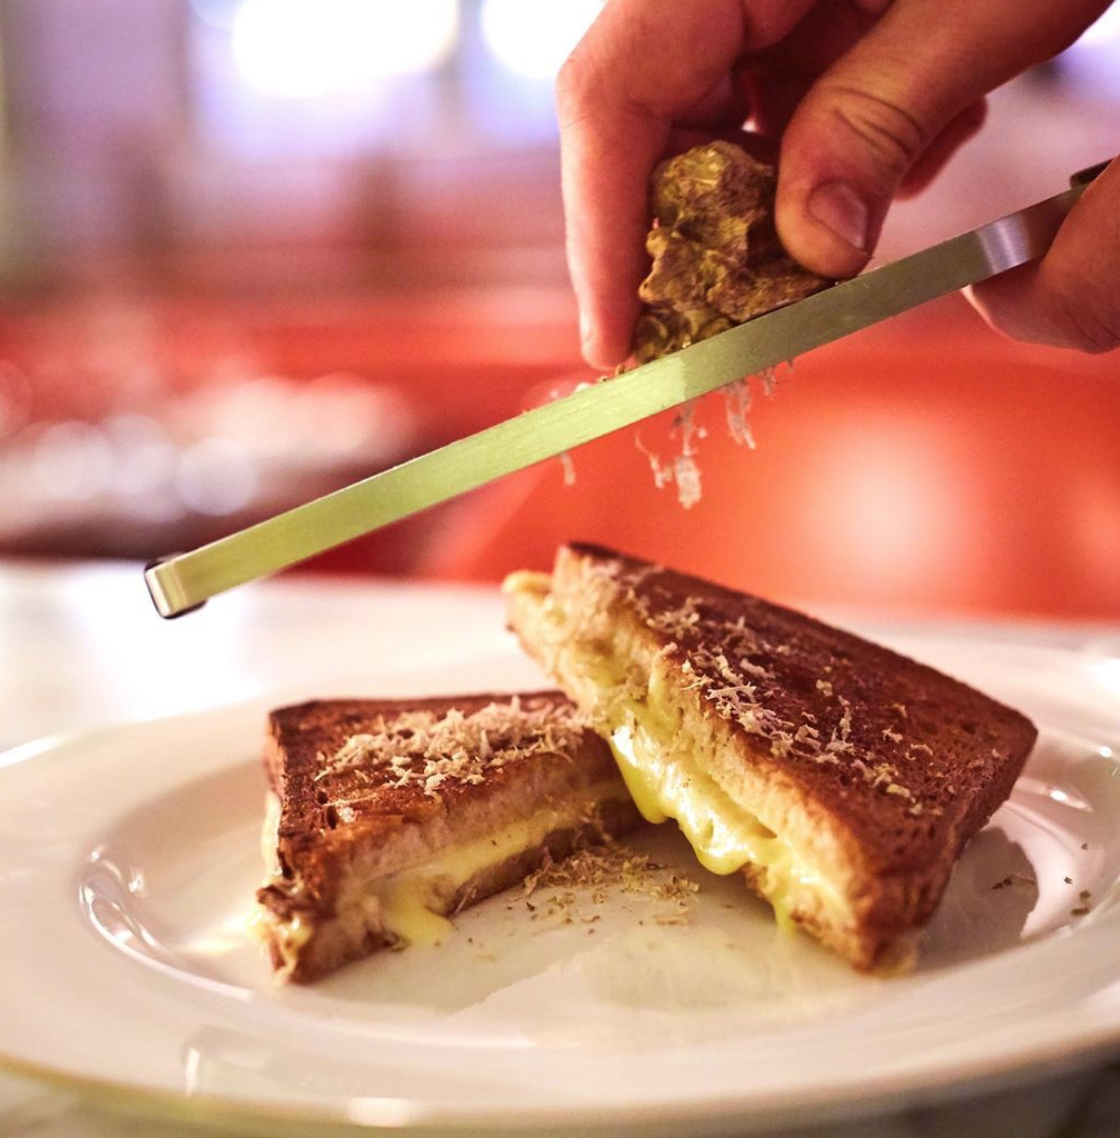 Cheese toastie at Fortnum and Mason's 45 Jermyn Street delighted Times critic Marina O'Loughlin